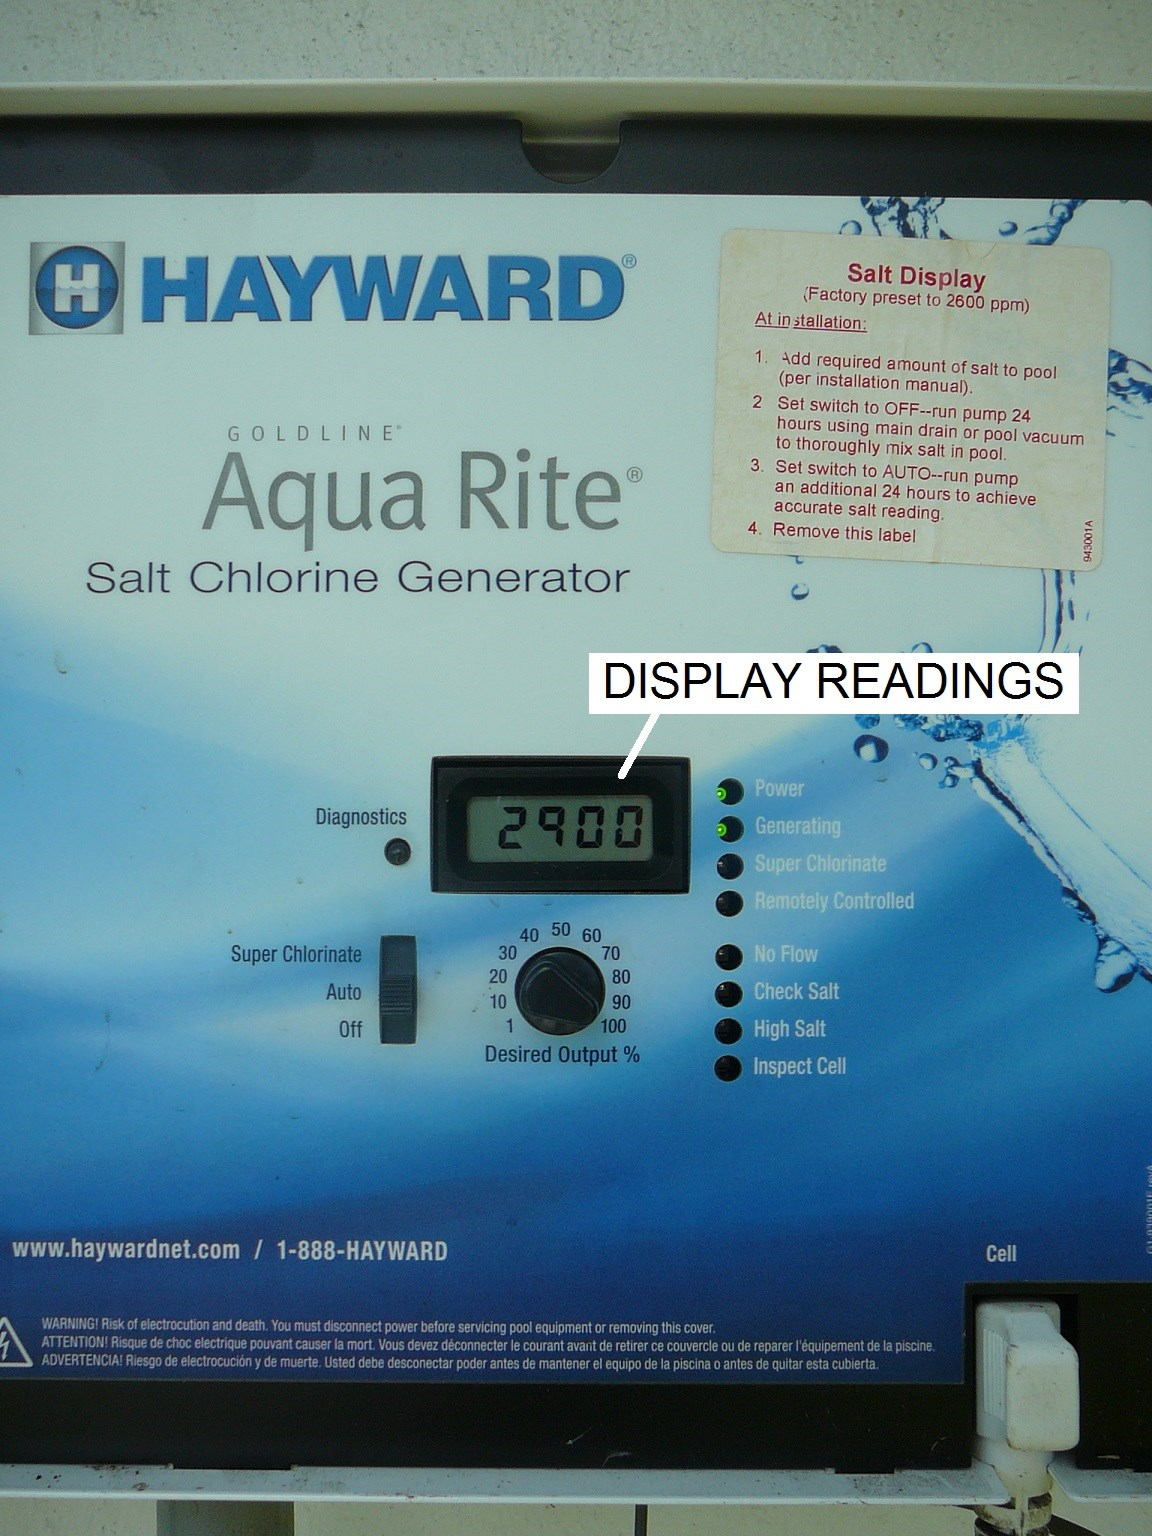 How To Read And Adjust The Hayward Aqua Rite Scg Operational Values Make This Temperature Indicator Circuit With Sequential Led Display Guide Describes Readings On A Salt Chlorine Generator Links You Series Of Guides That Tell Have